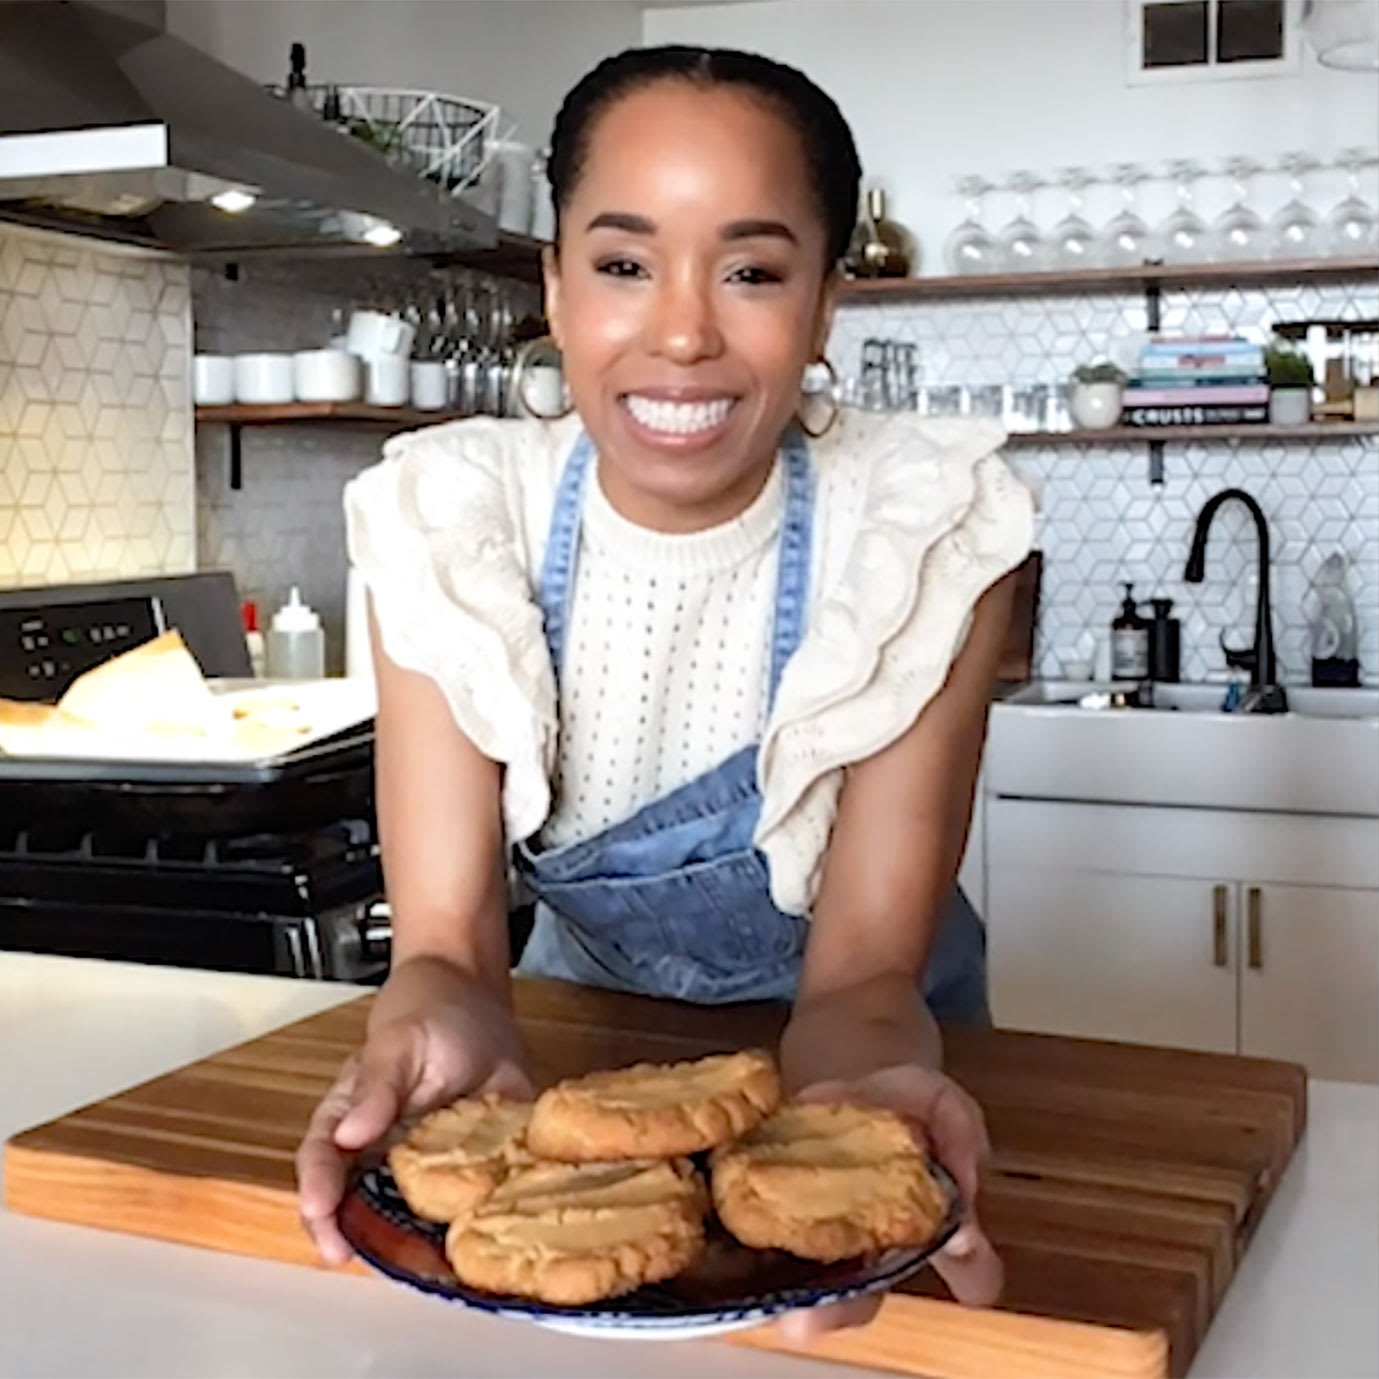 A woman in a kitchen holding a plate of cookies.